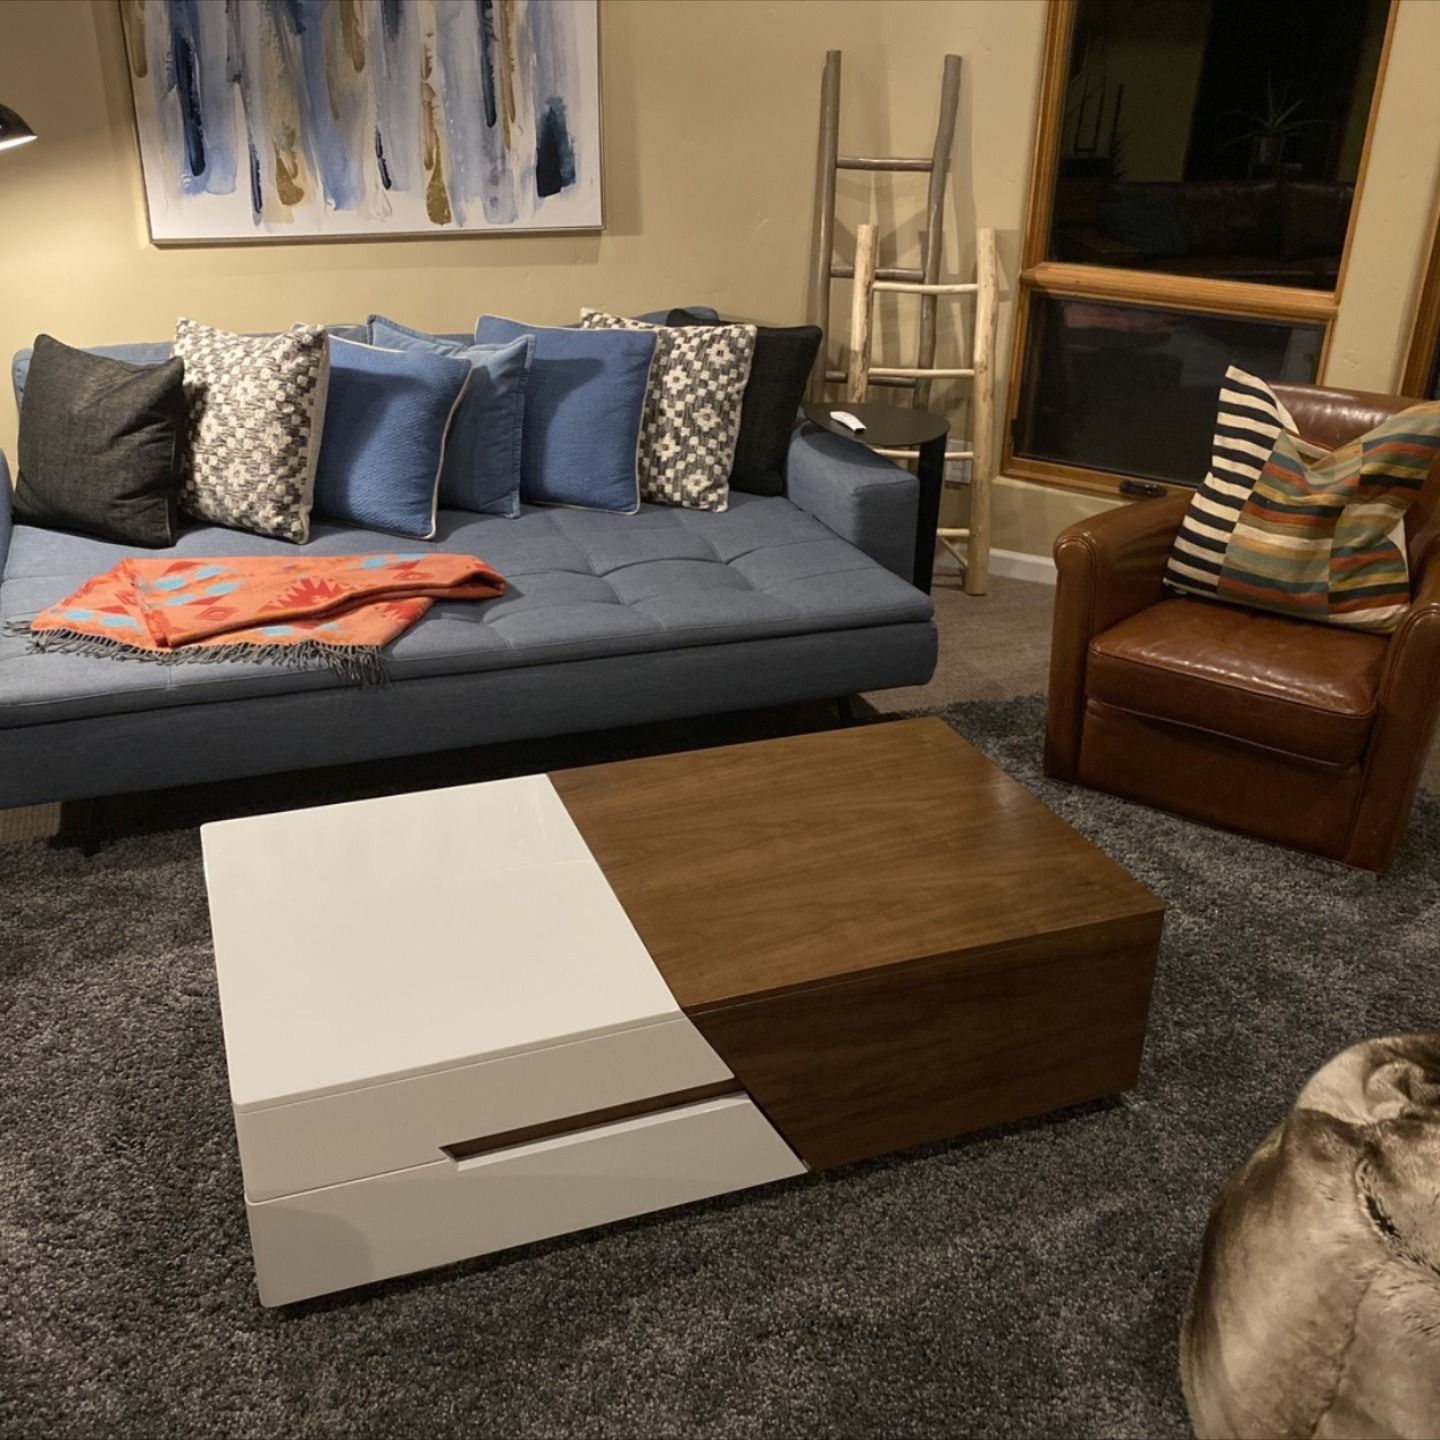 Modern Chic 51 Extendable Coffee Table With Storage Sliding Top Coffee Table Manufactured Wood In White Walnut Extendable Coffee Table Coffee Table With Storage Stylish Coffee Table [ 1440 x 1440 Pixel ]